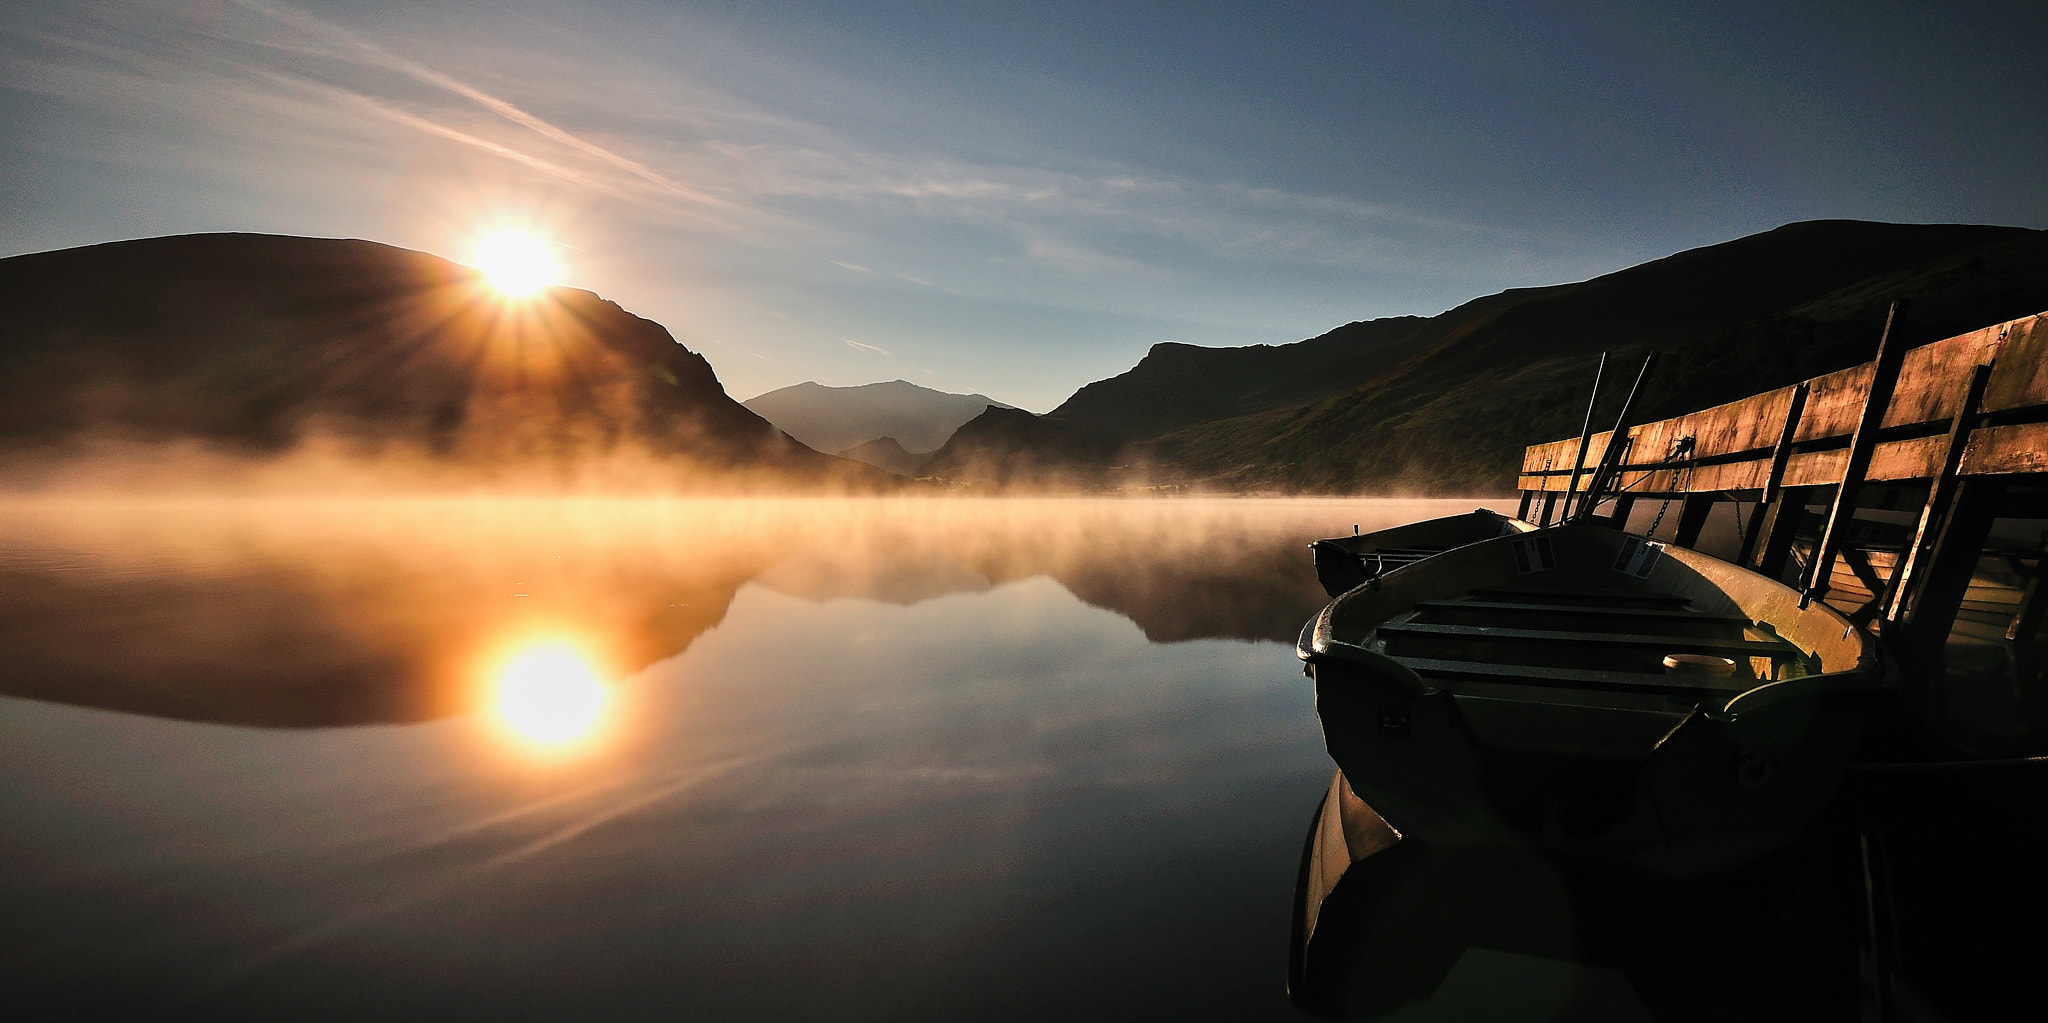 Photograph Nantlle Lake by Kevin O'Brian on 500px